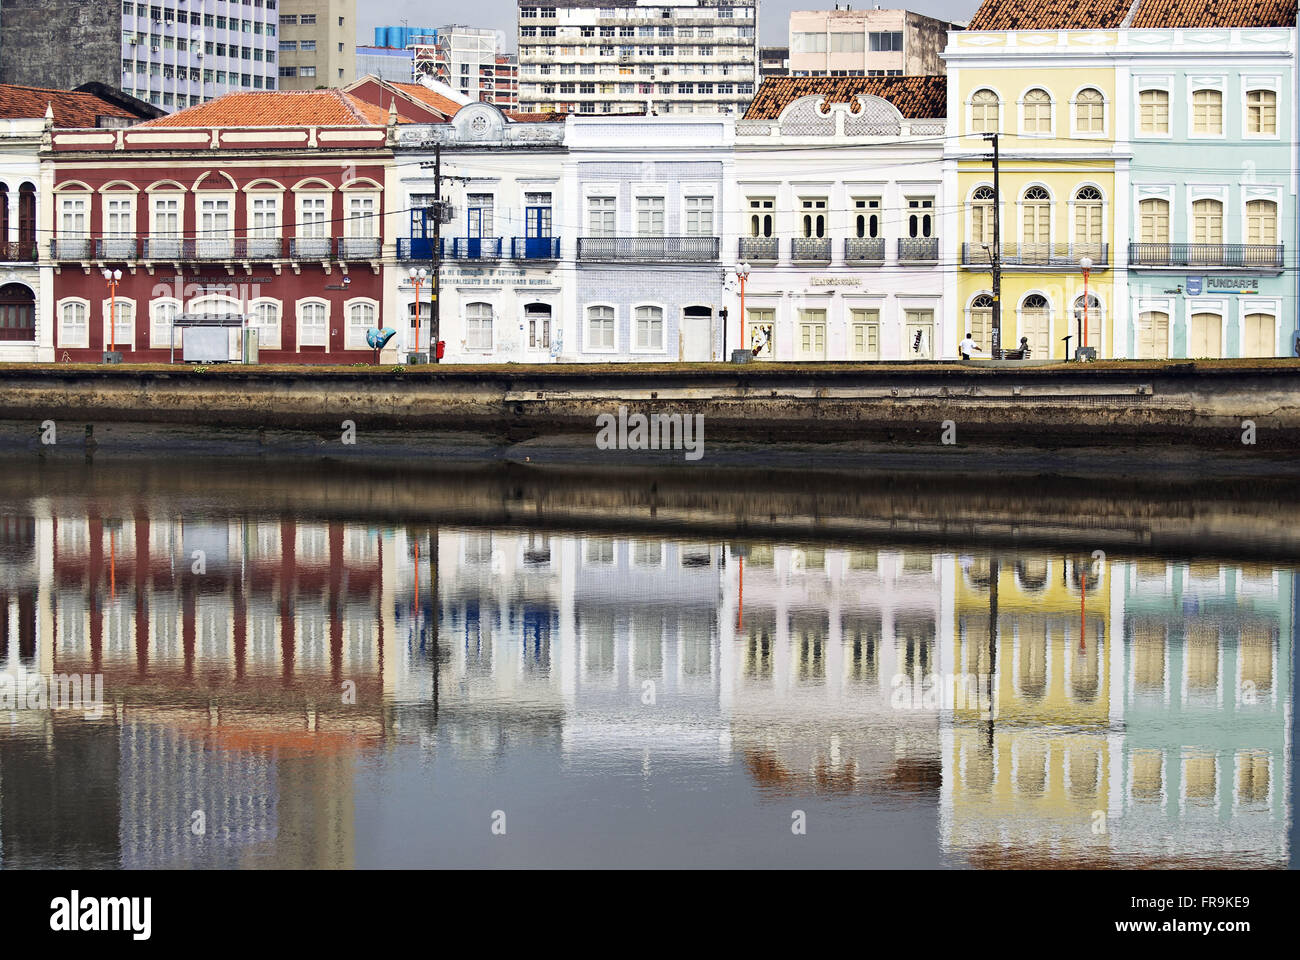 Casarios Aurora Street on the bank of river Capibaribe in Recife - PE - Stock Image